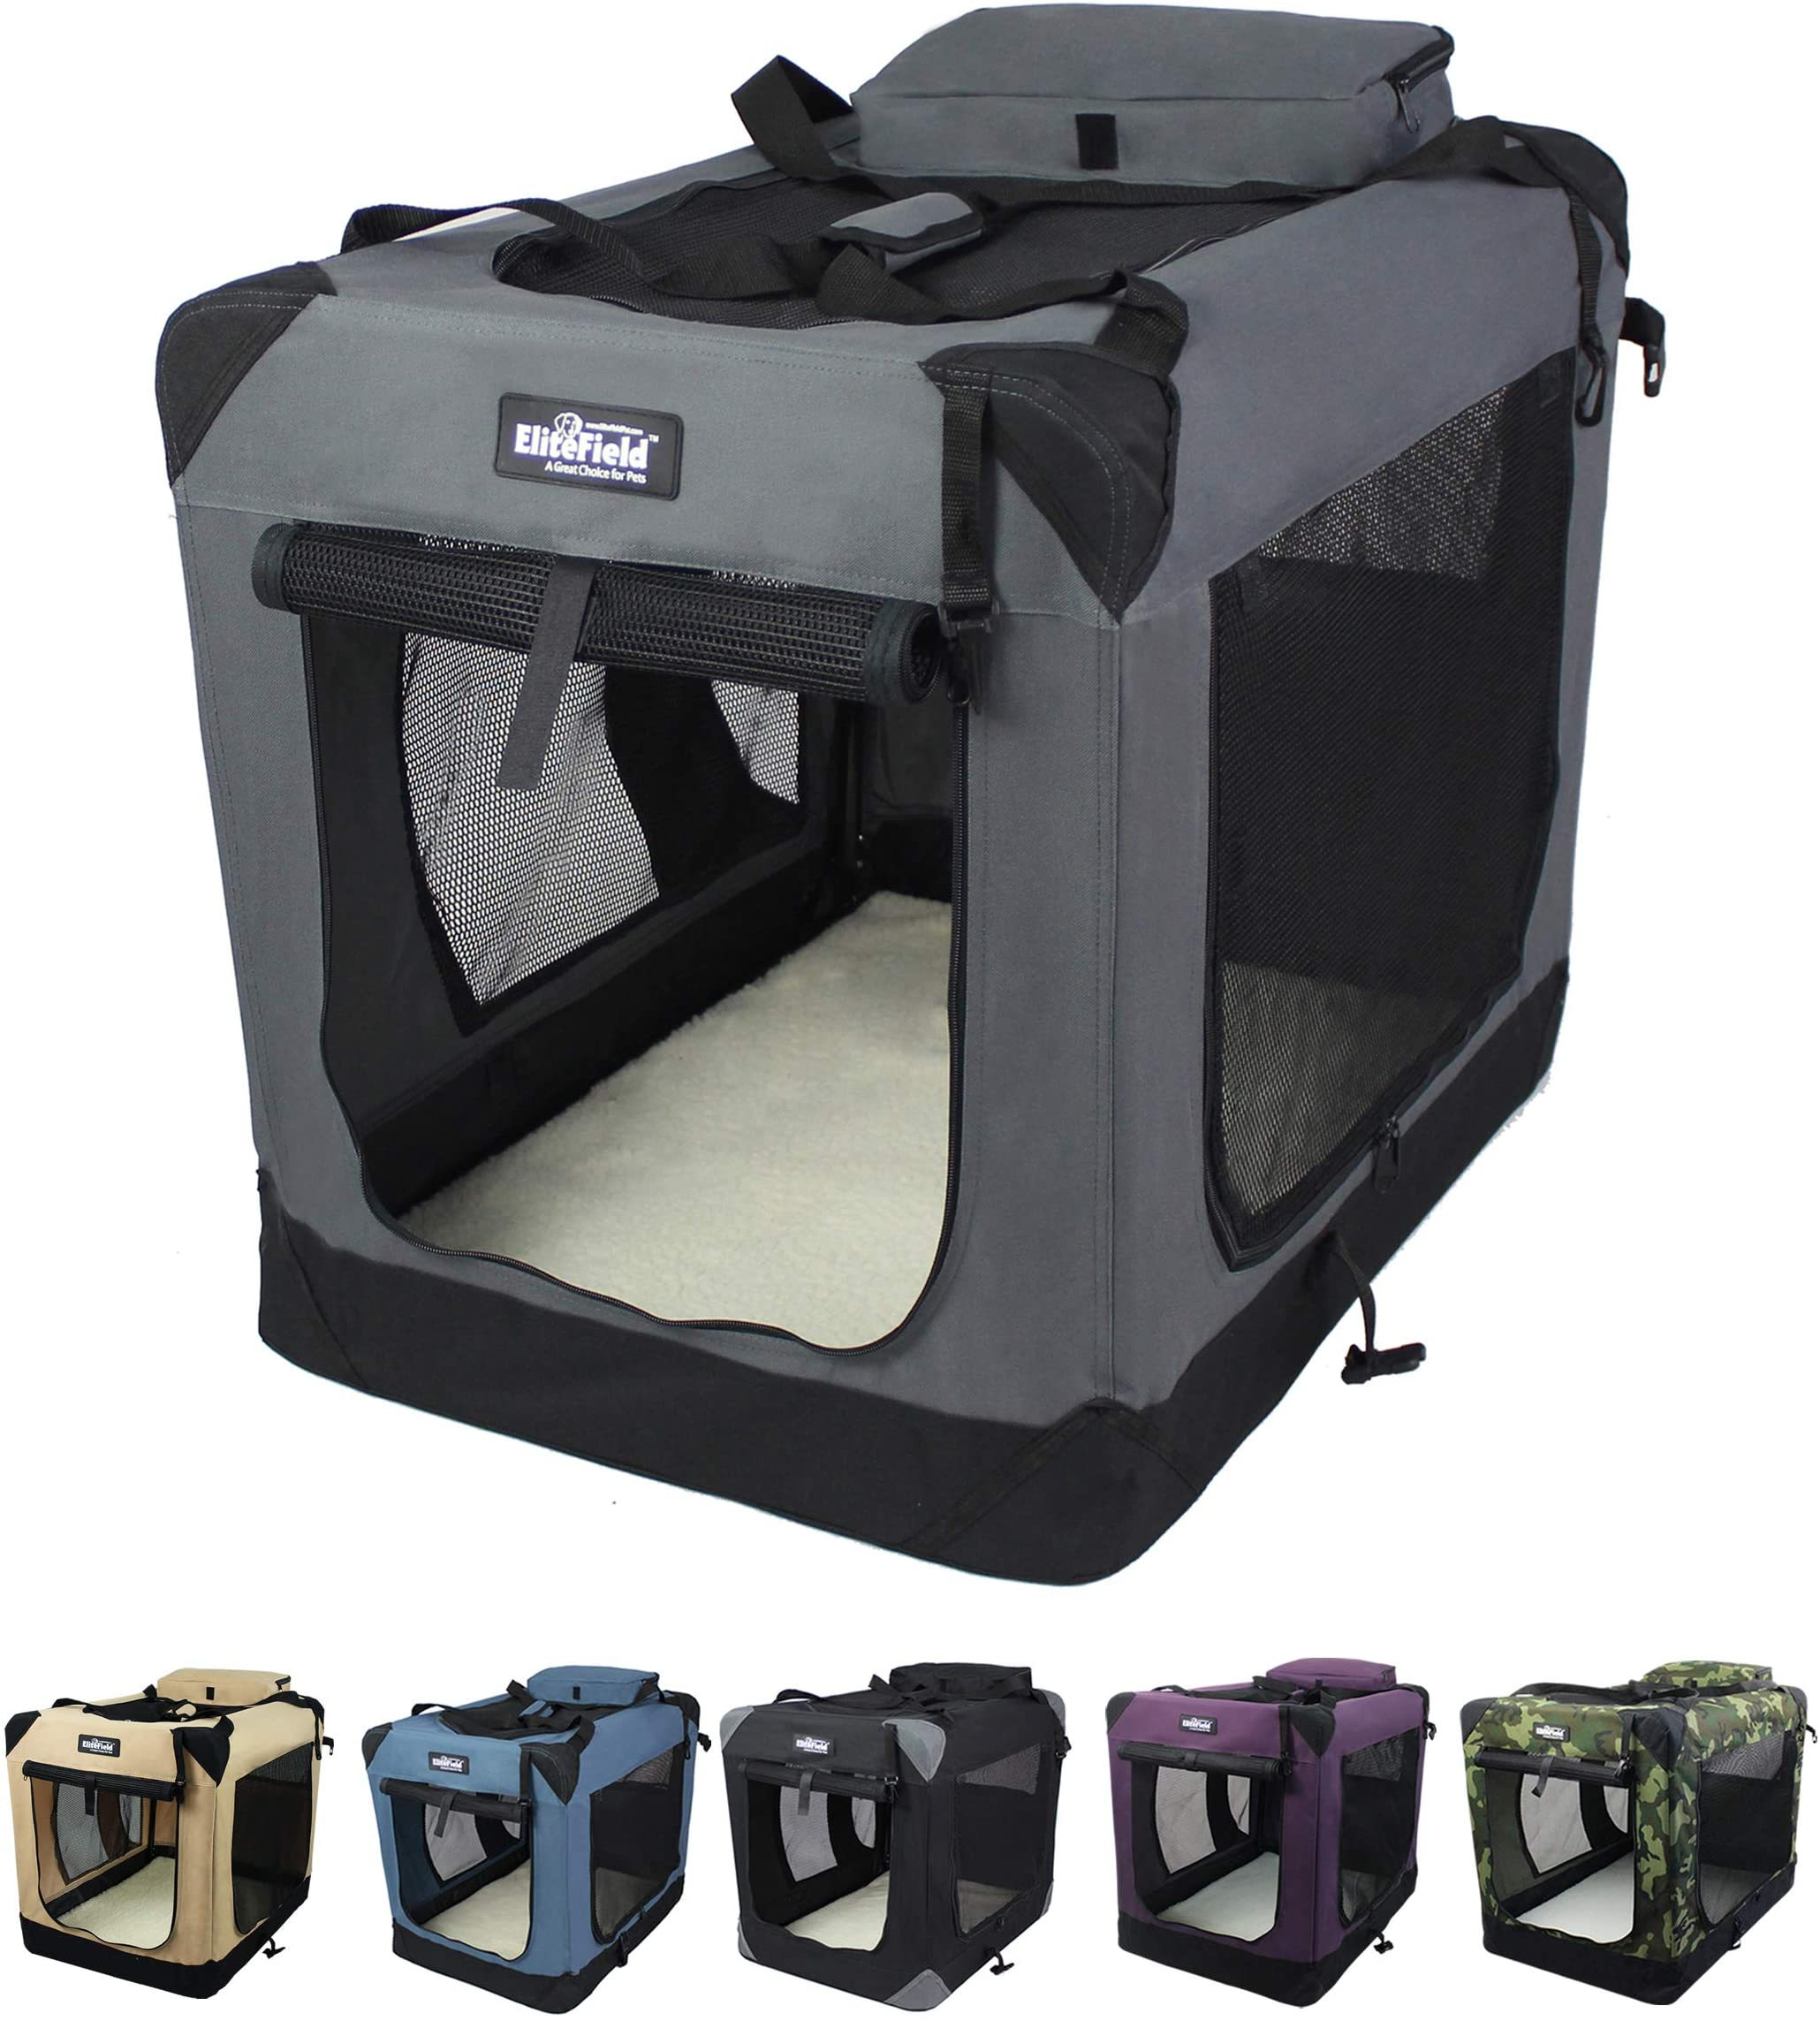 """EliteField 3-Door Folding Soft Dog Crate, Indoor & Outdoor Pet Home, Multiple Sizes and Colors Available (42"""" L x 28"""" W x 32"""" H, Gray)"""